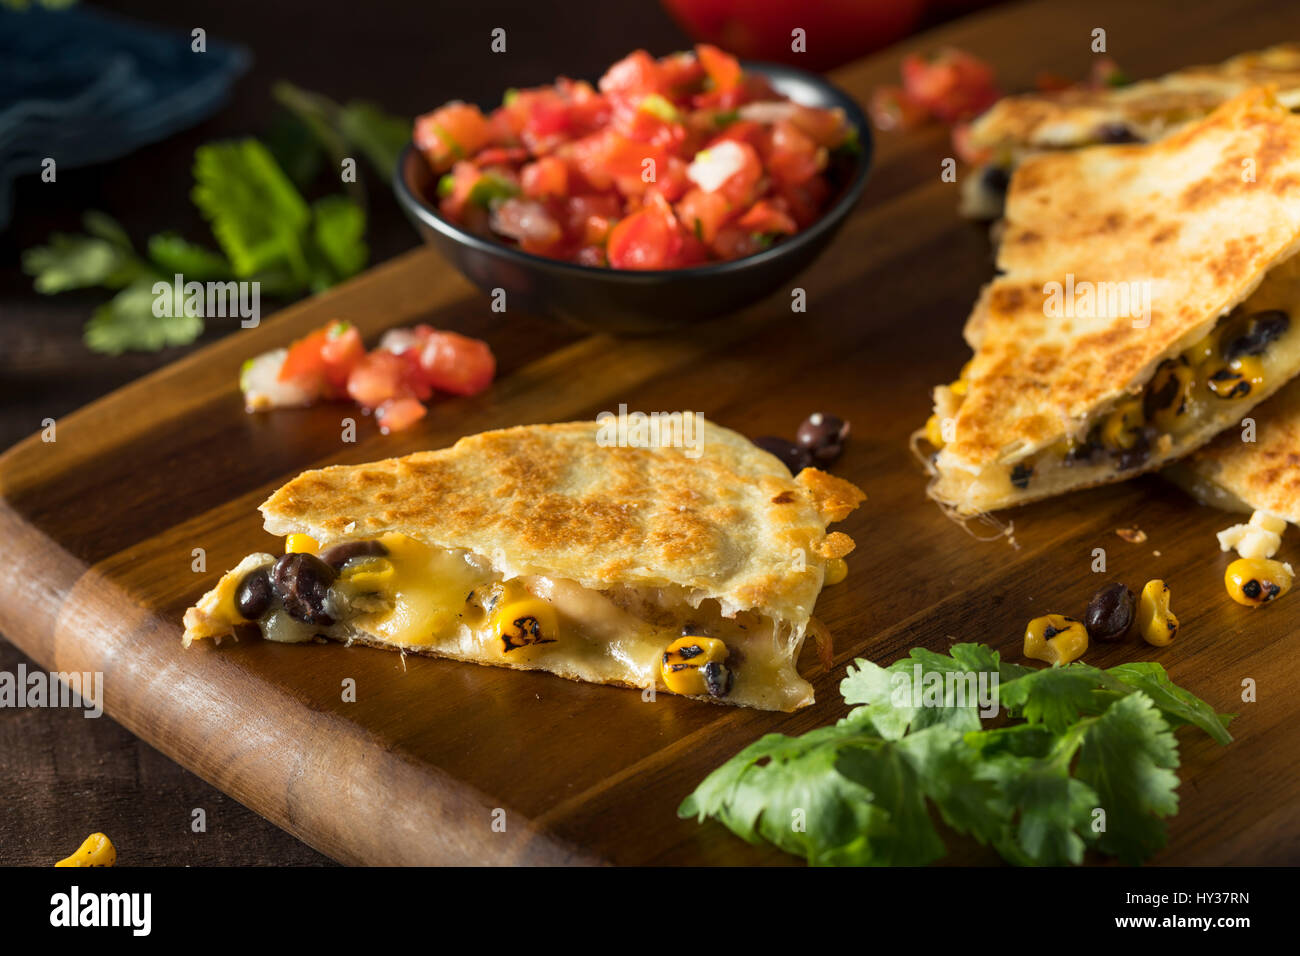 Homemade Chicken and Cheese Quesadilla with Salsa and Cilantro - Stock Image